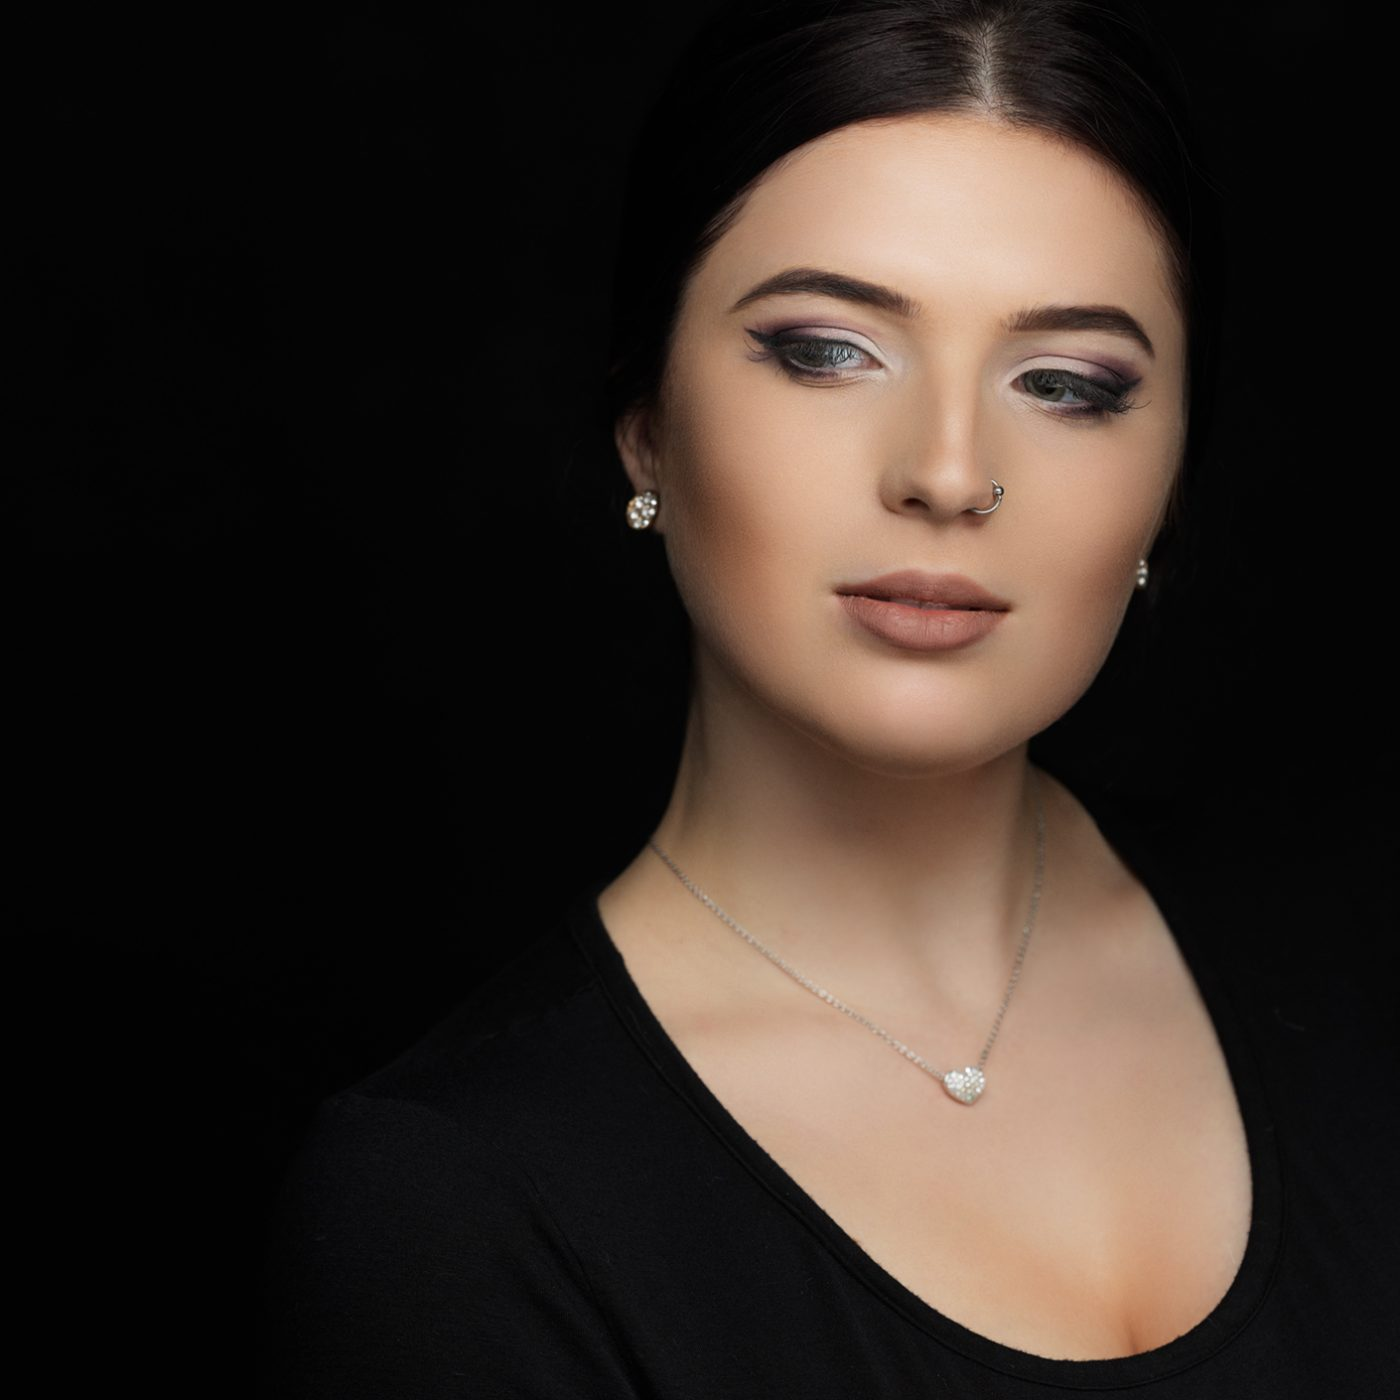 beauty portrait photography in Montreal, creative portrait photography